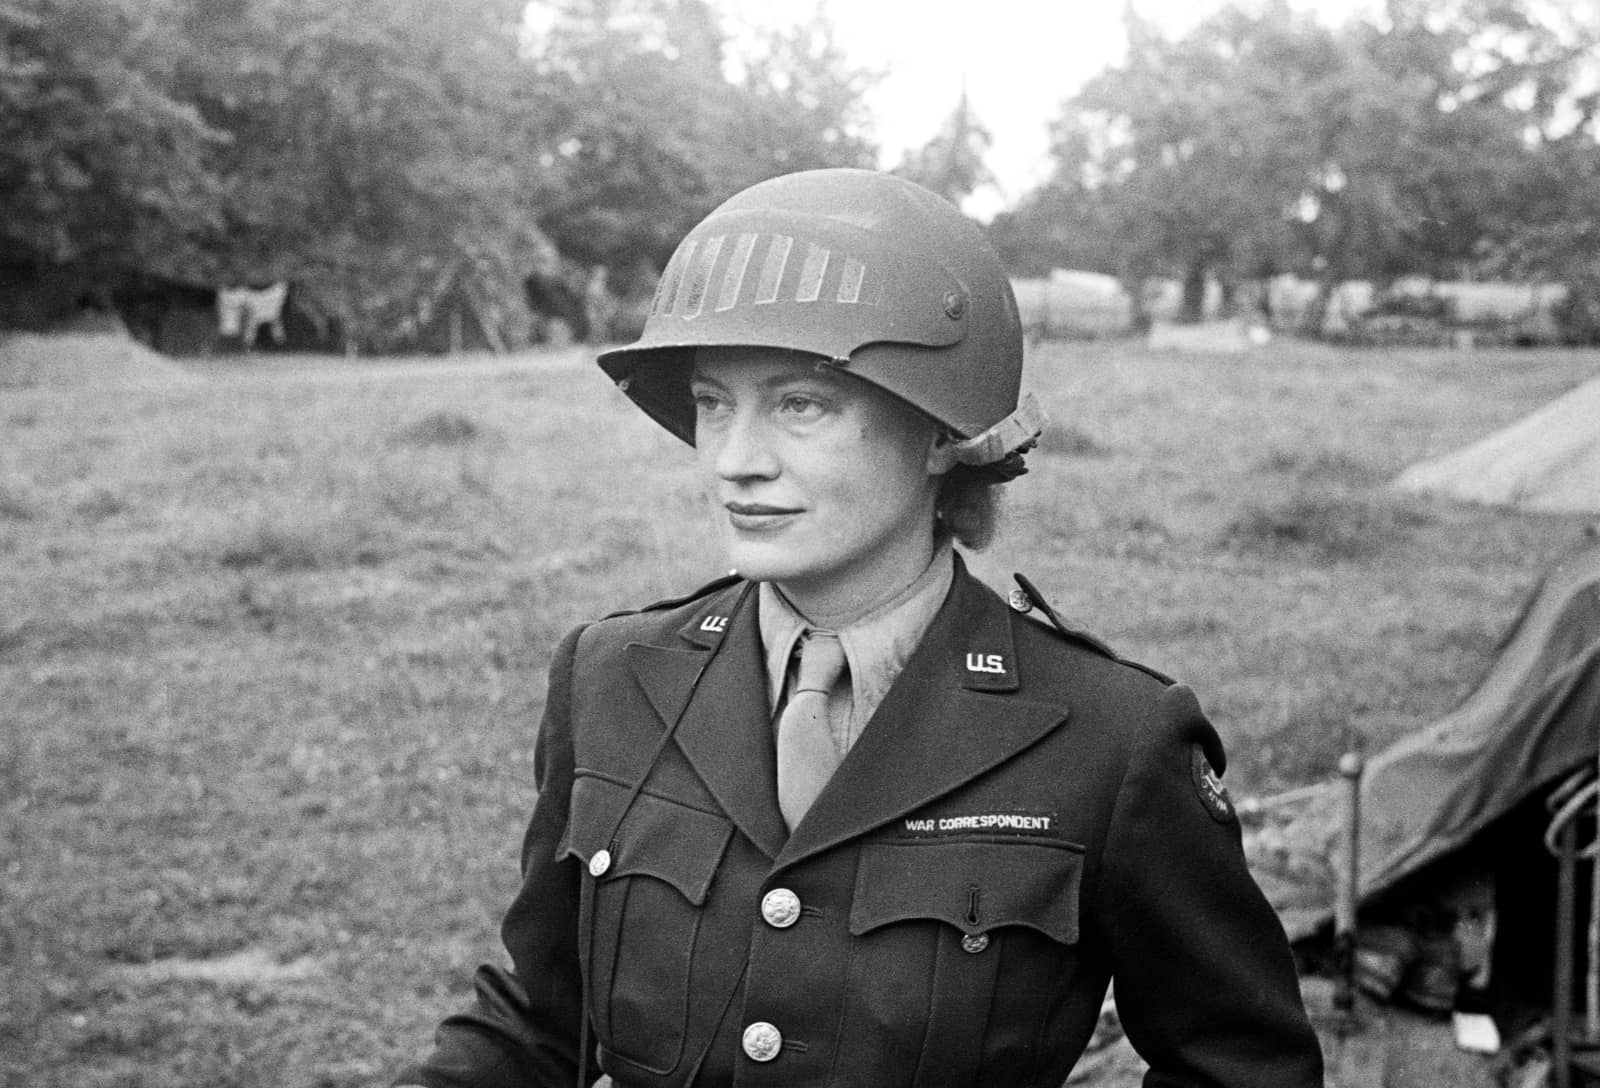 foto: © Lee Miller Archives - Lee Miller met speciale US Army helm